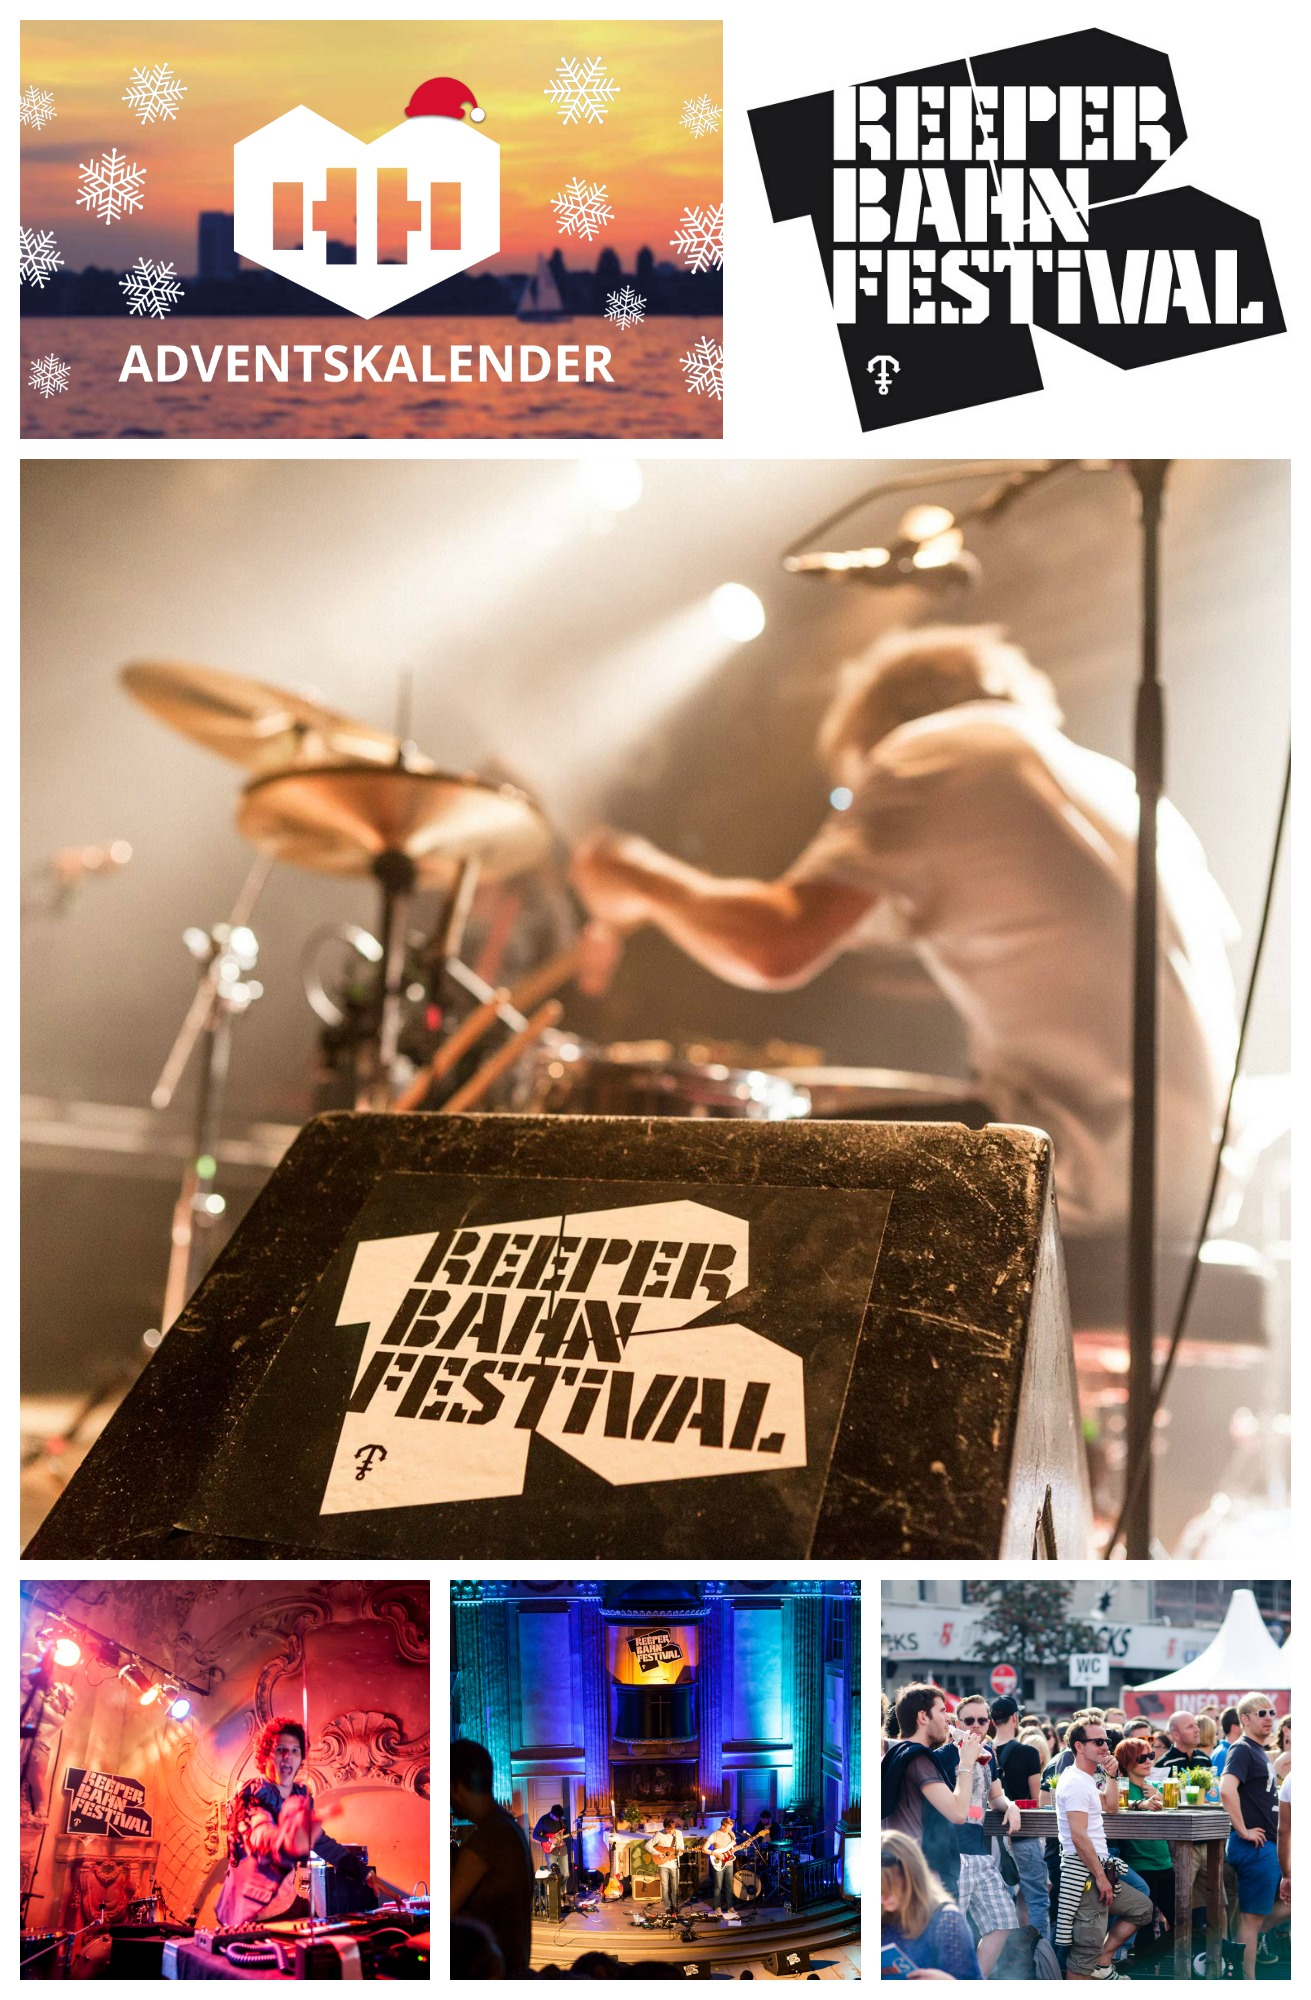 t rchen 24 wir verlosen heute 2x1 ticket f r das reeperbahn festival 2015 plus m tze t shirt. Black Bedroom Furniture Sets. Home Design Ideas